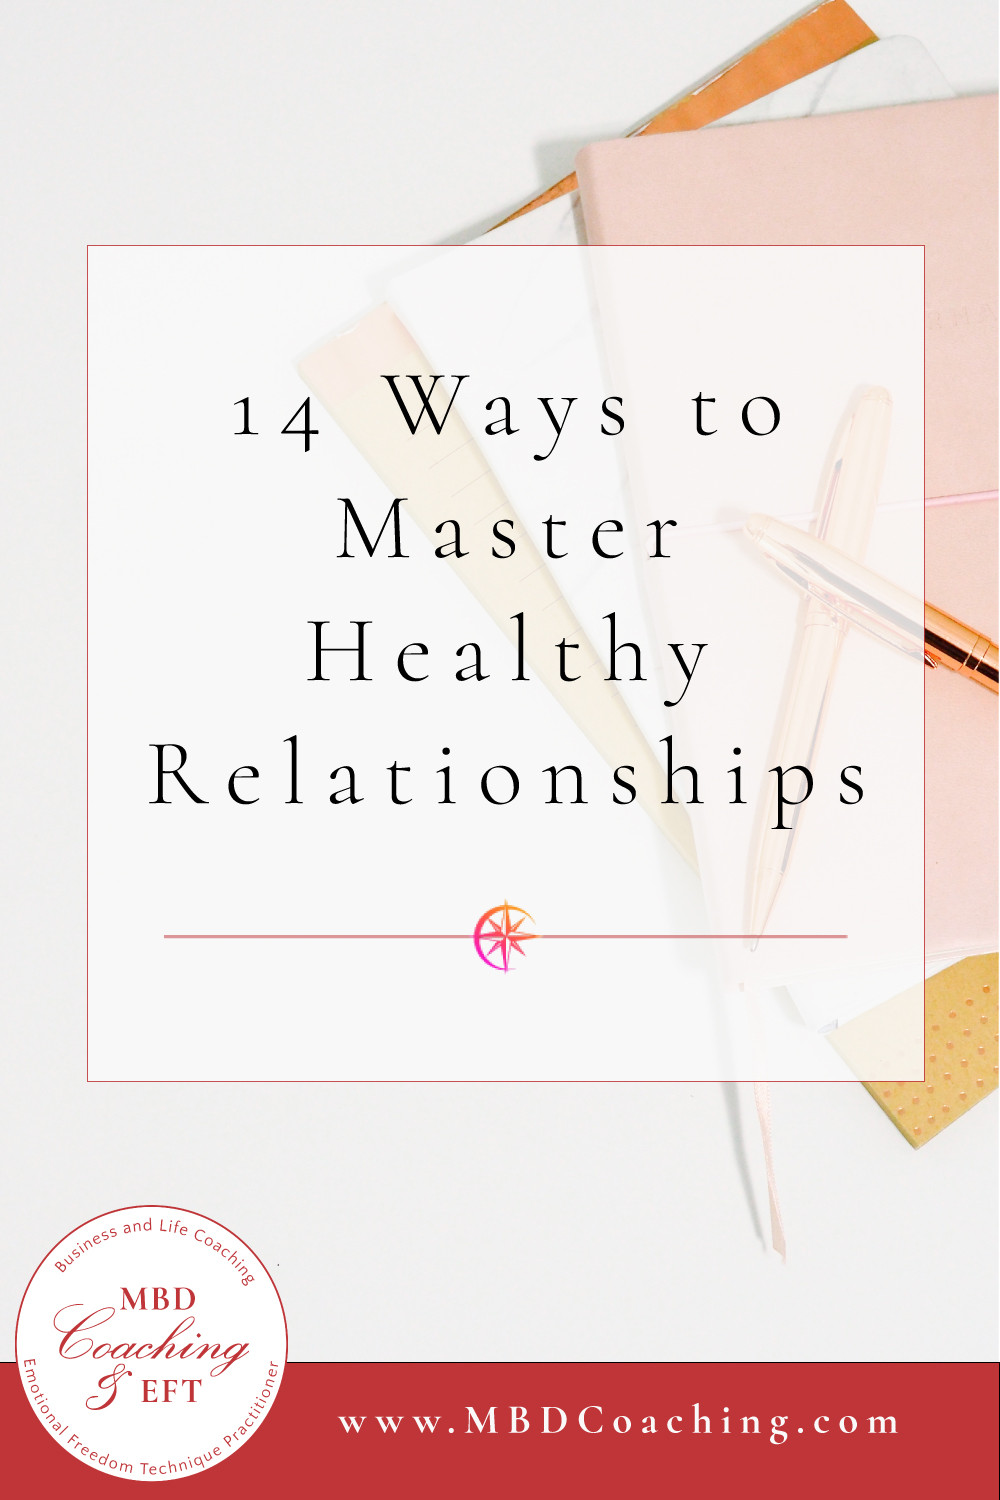 14 Ways to Master Healthy Relationships with MBD Coaching